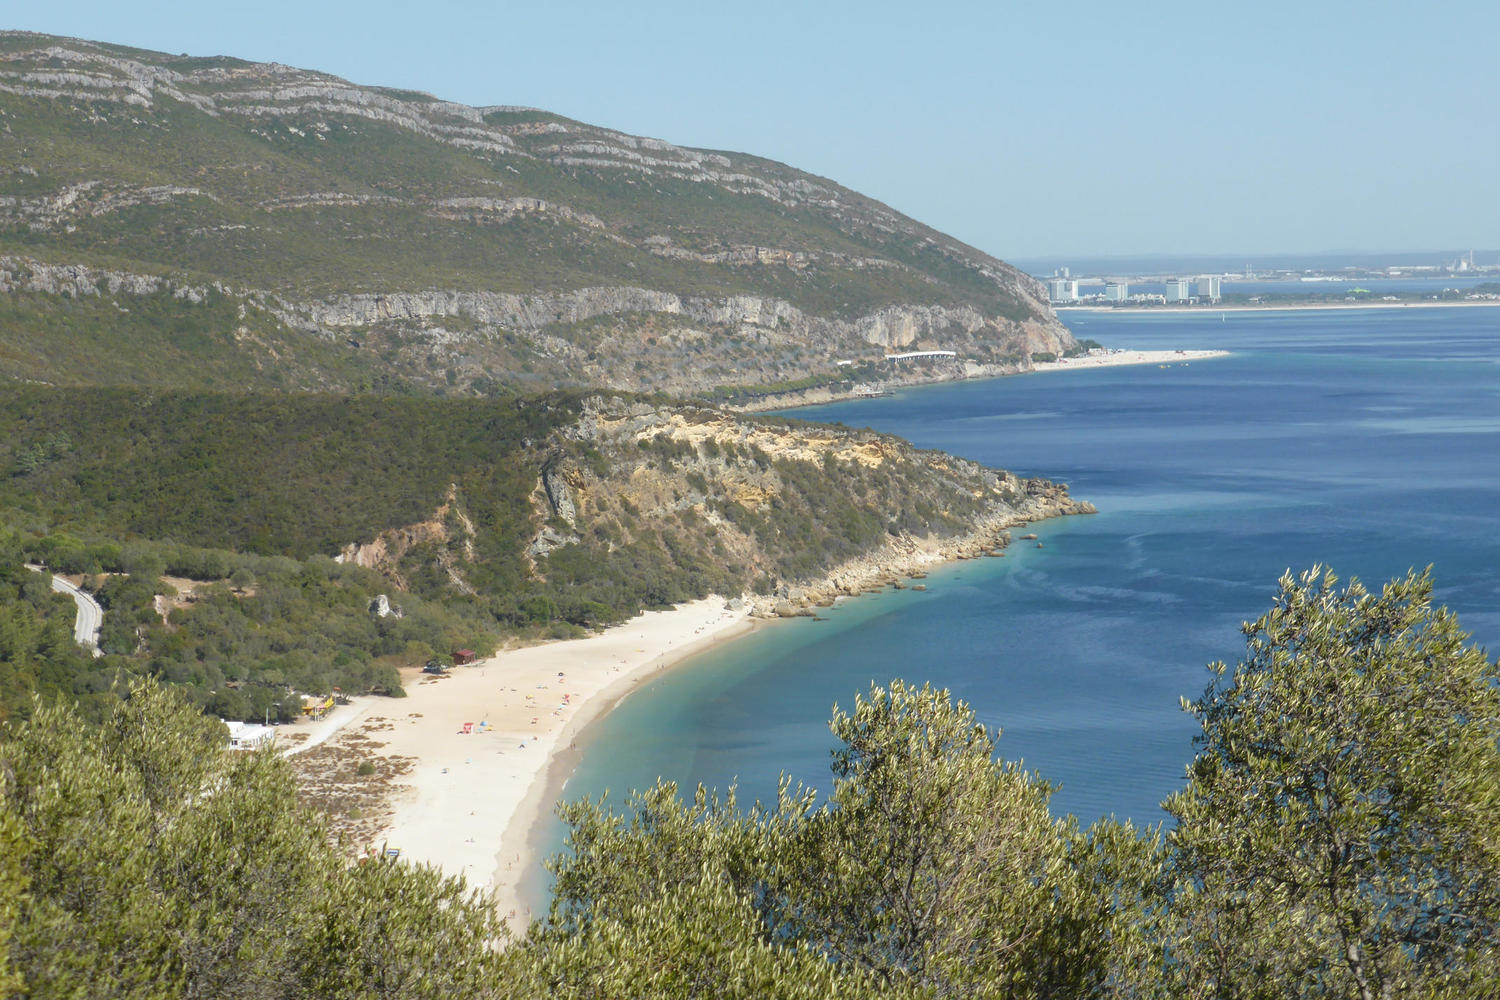 Welcoming beaches in the Serra da Arrabida